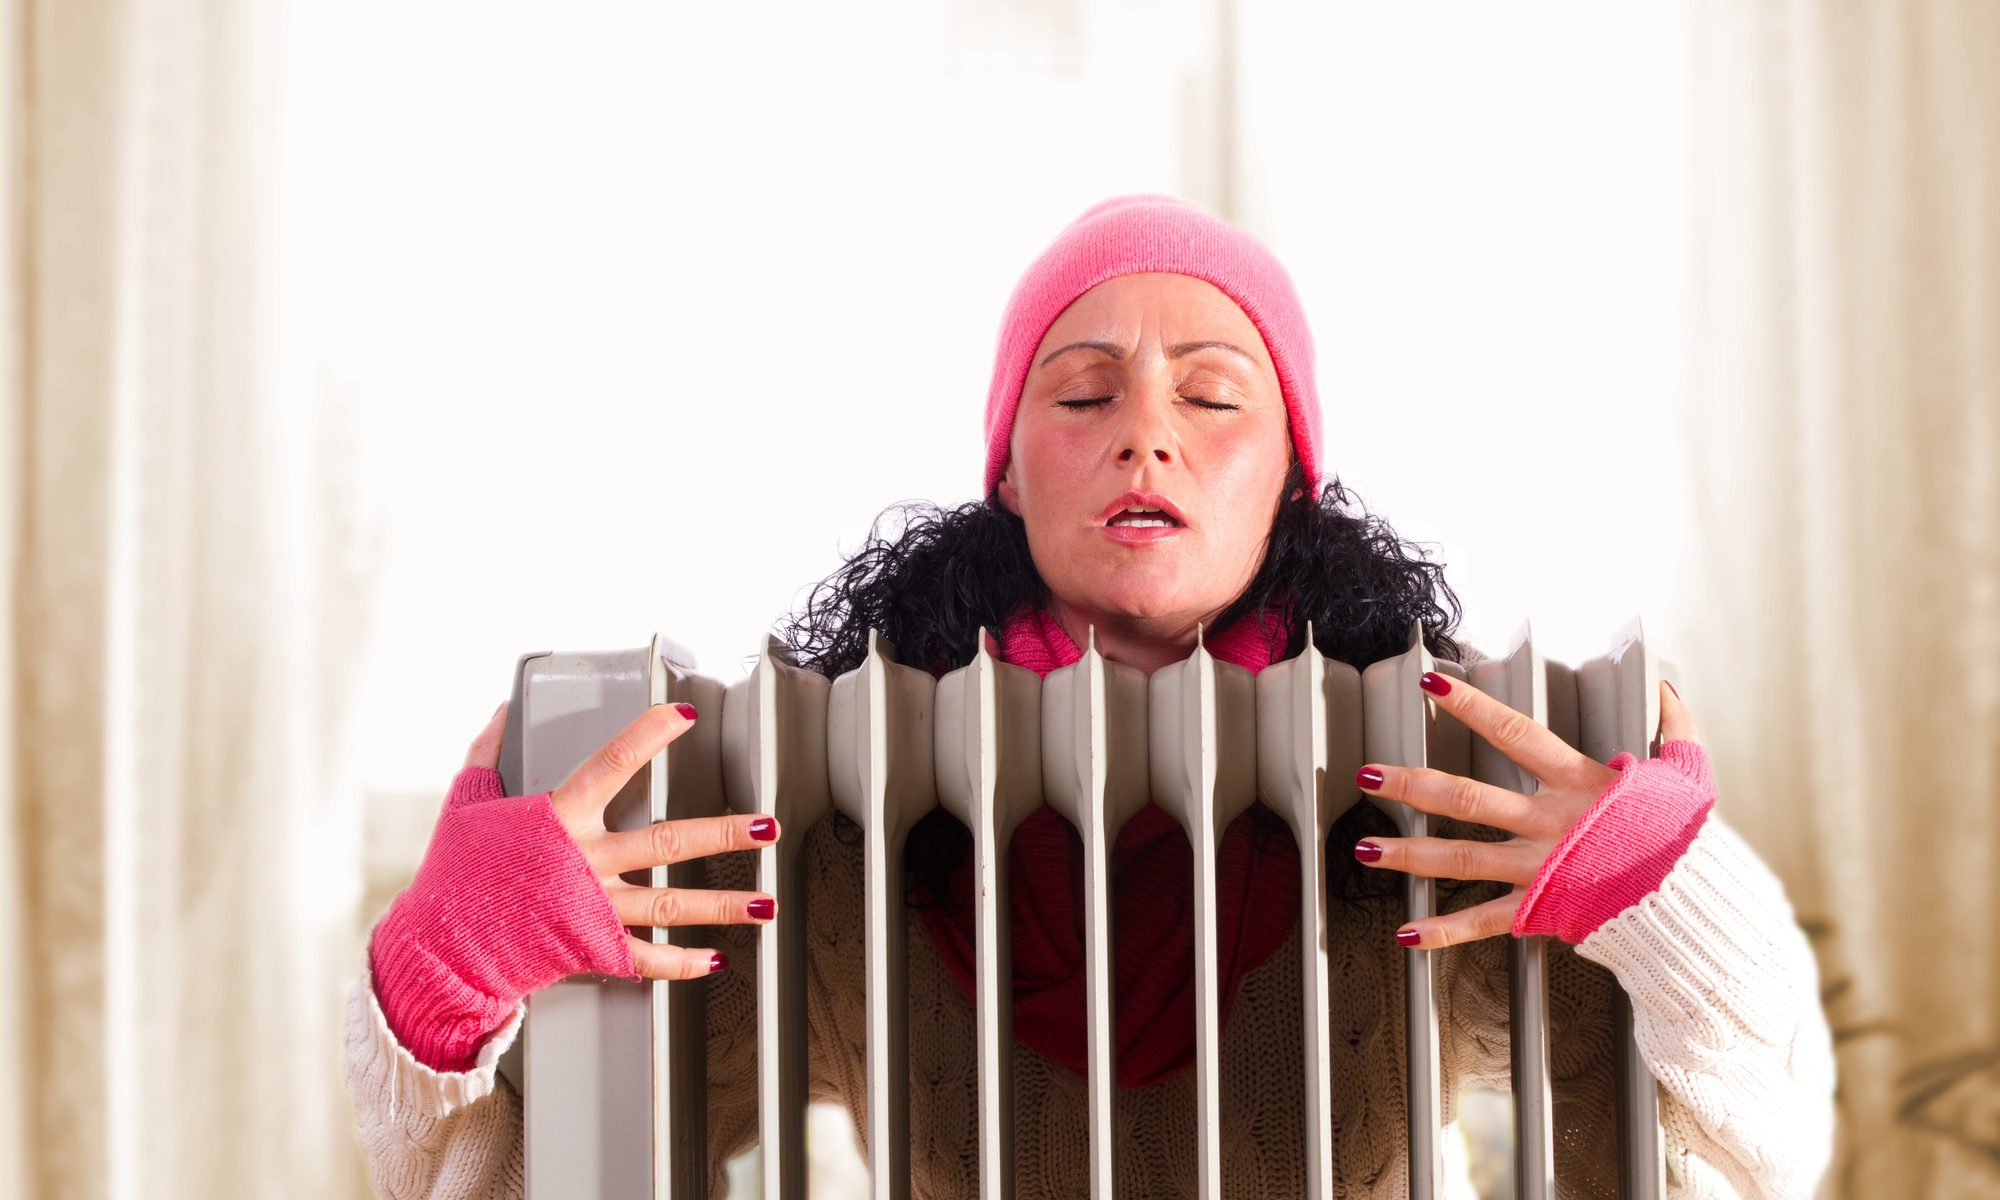 Cheap Heat: 5 Ways to Keep Your House Warm This Winter (And Save You Money)